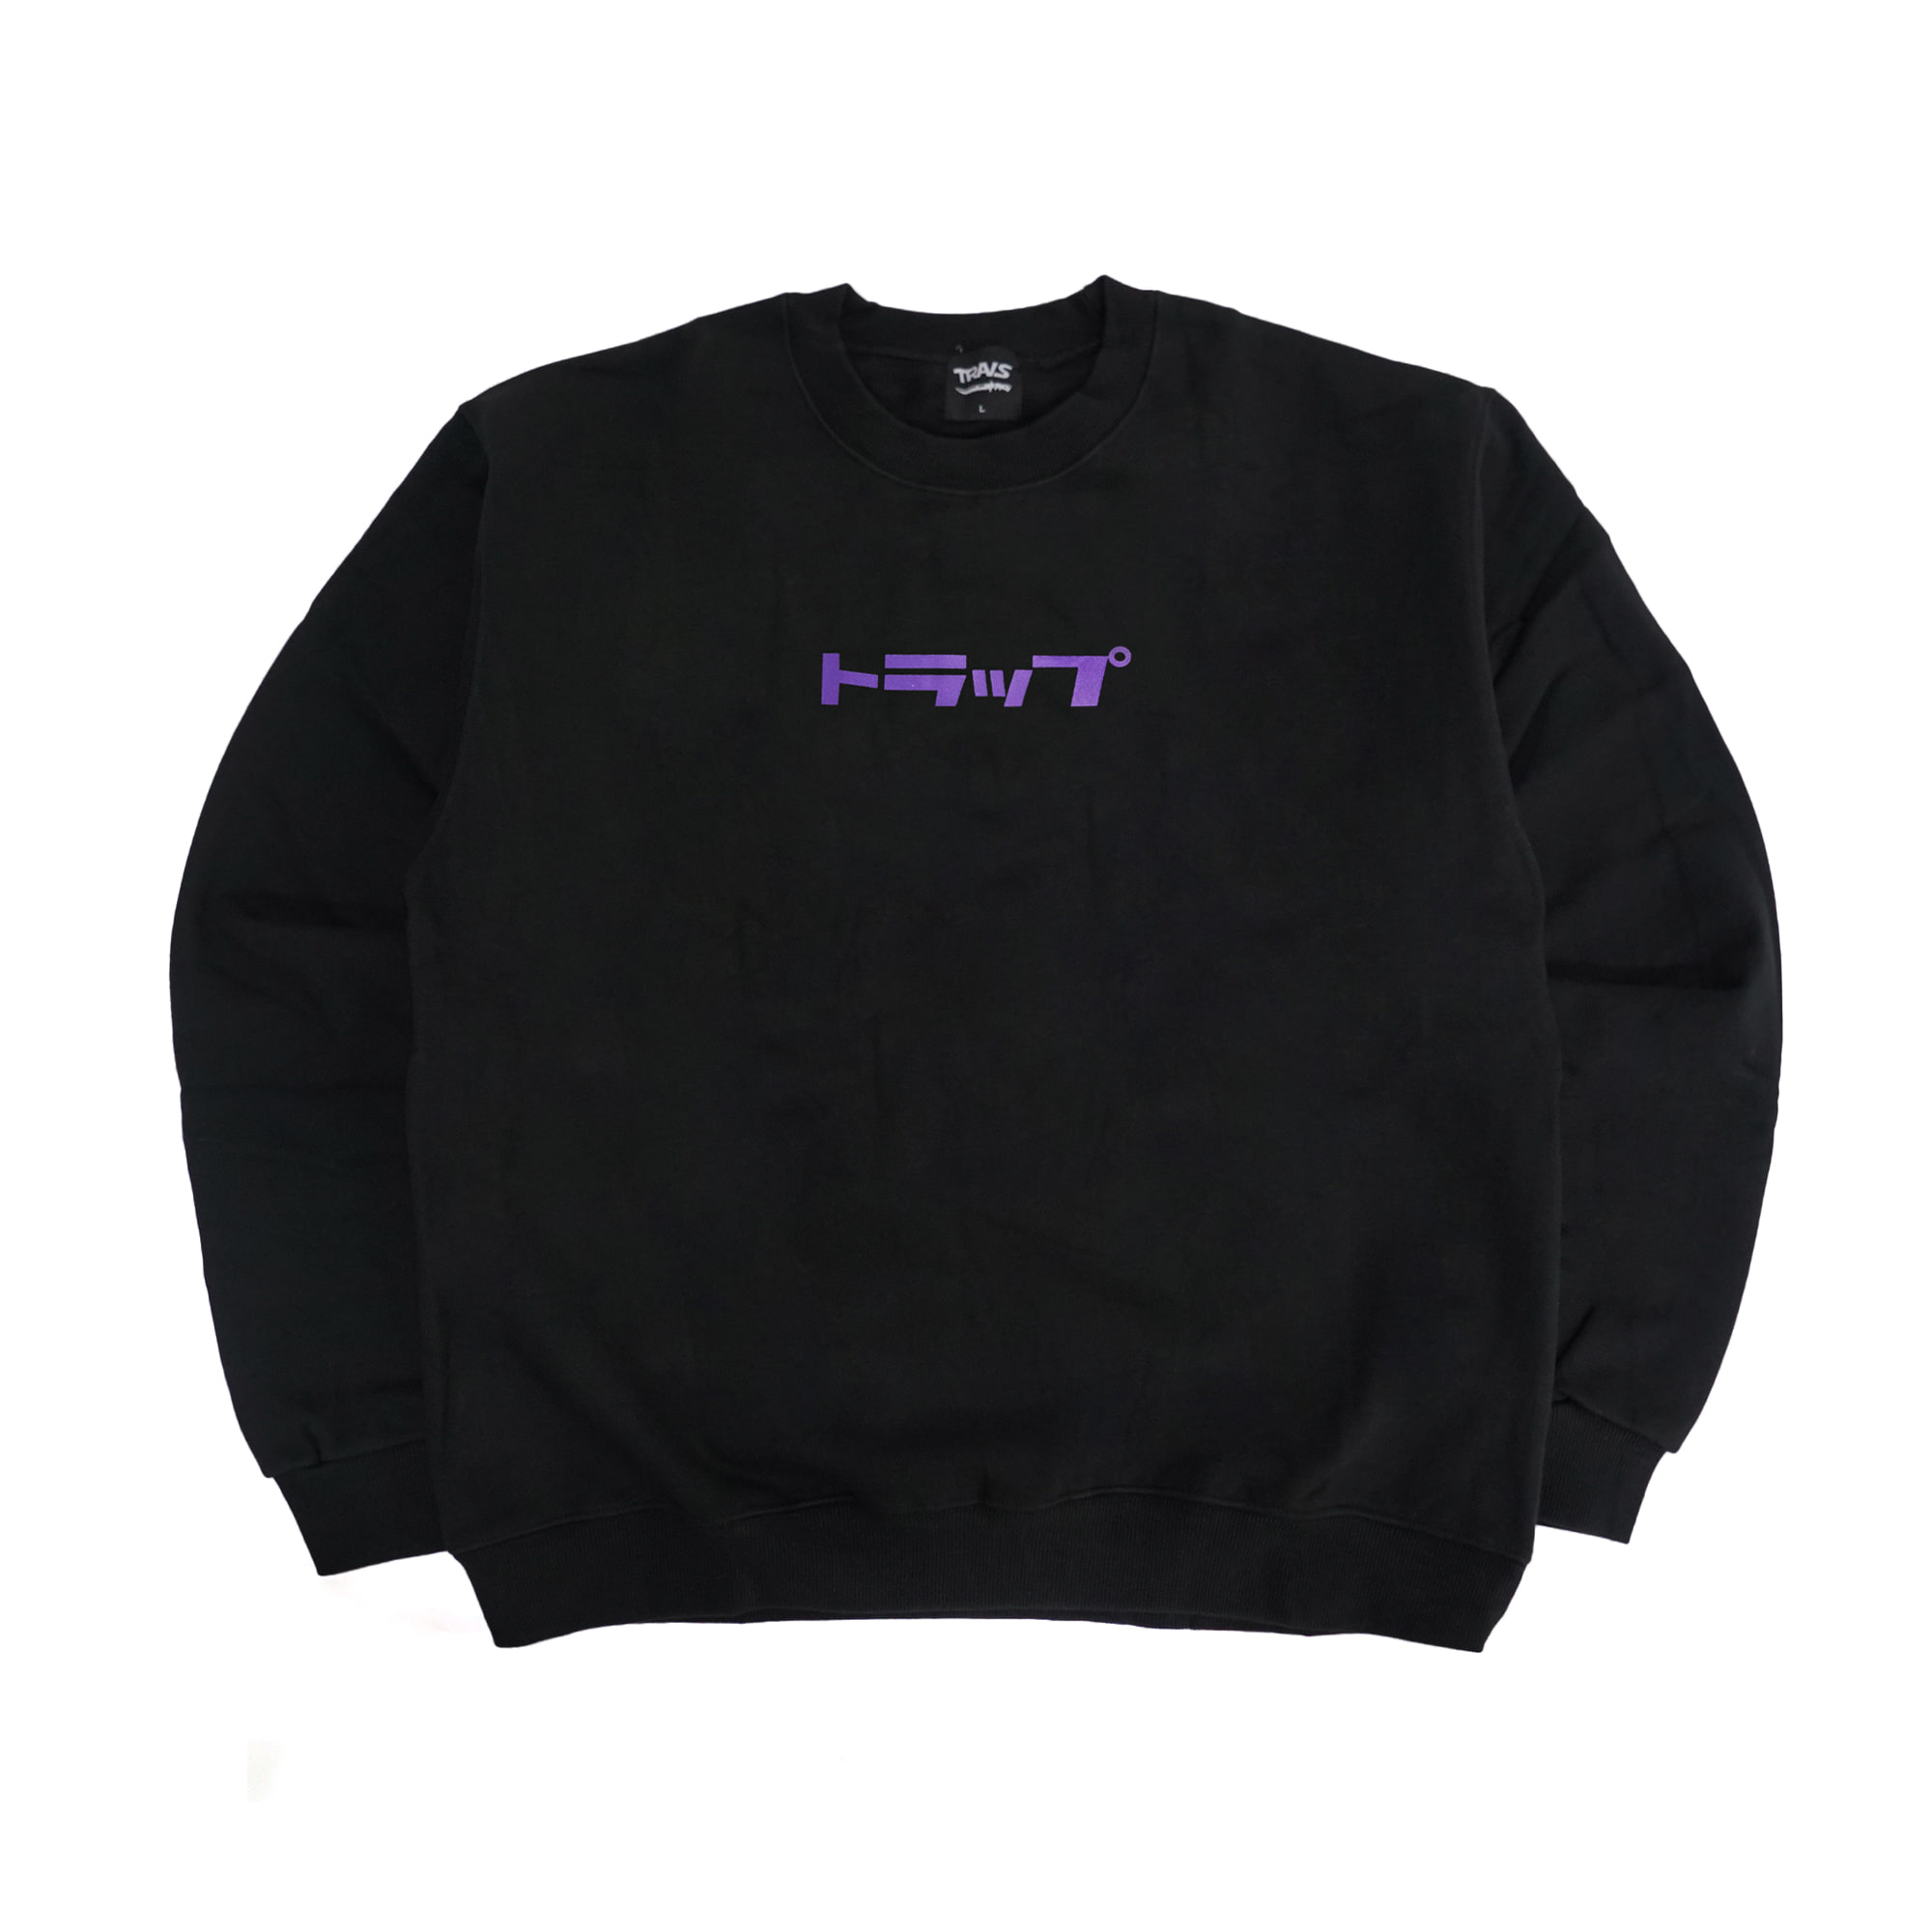 [TRAVS] TRAP CREWNECK SWEATSHIRTS - BLACK / PURPLE